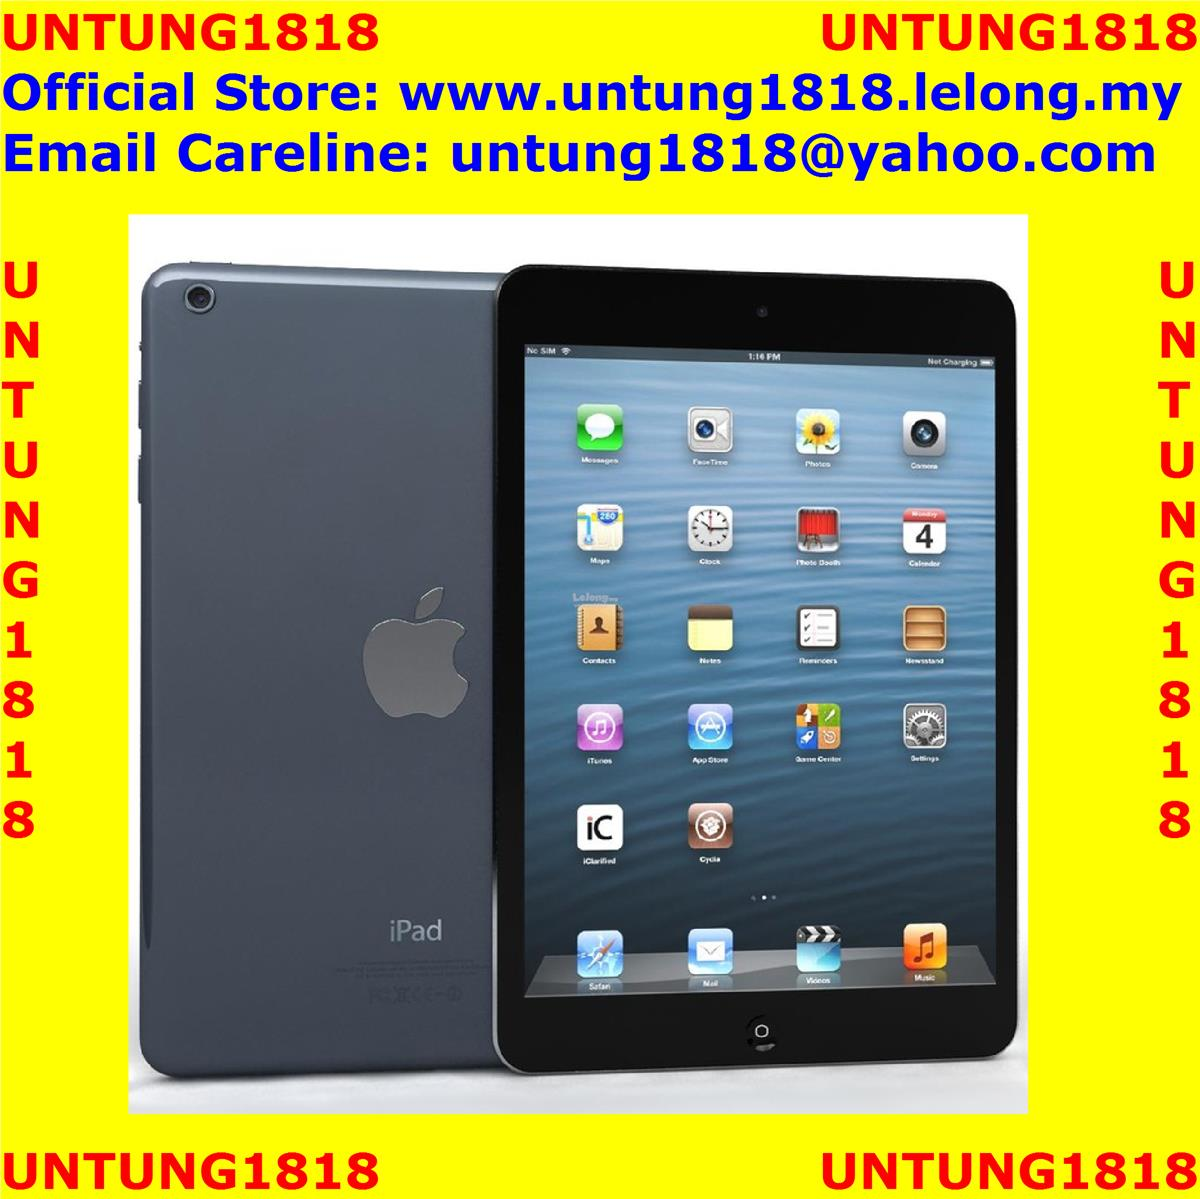 Original Imported..100% Apple.Apple iPad mini (sealed in box)